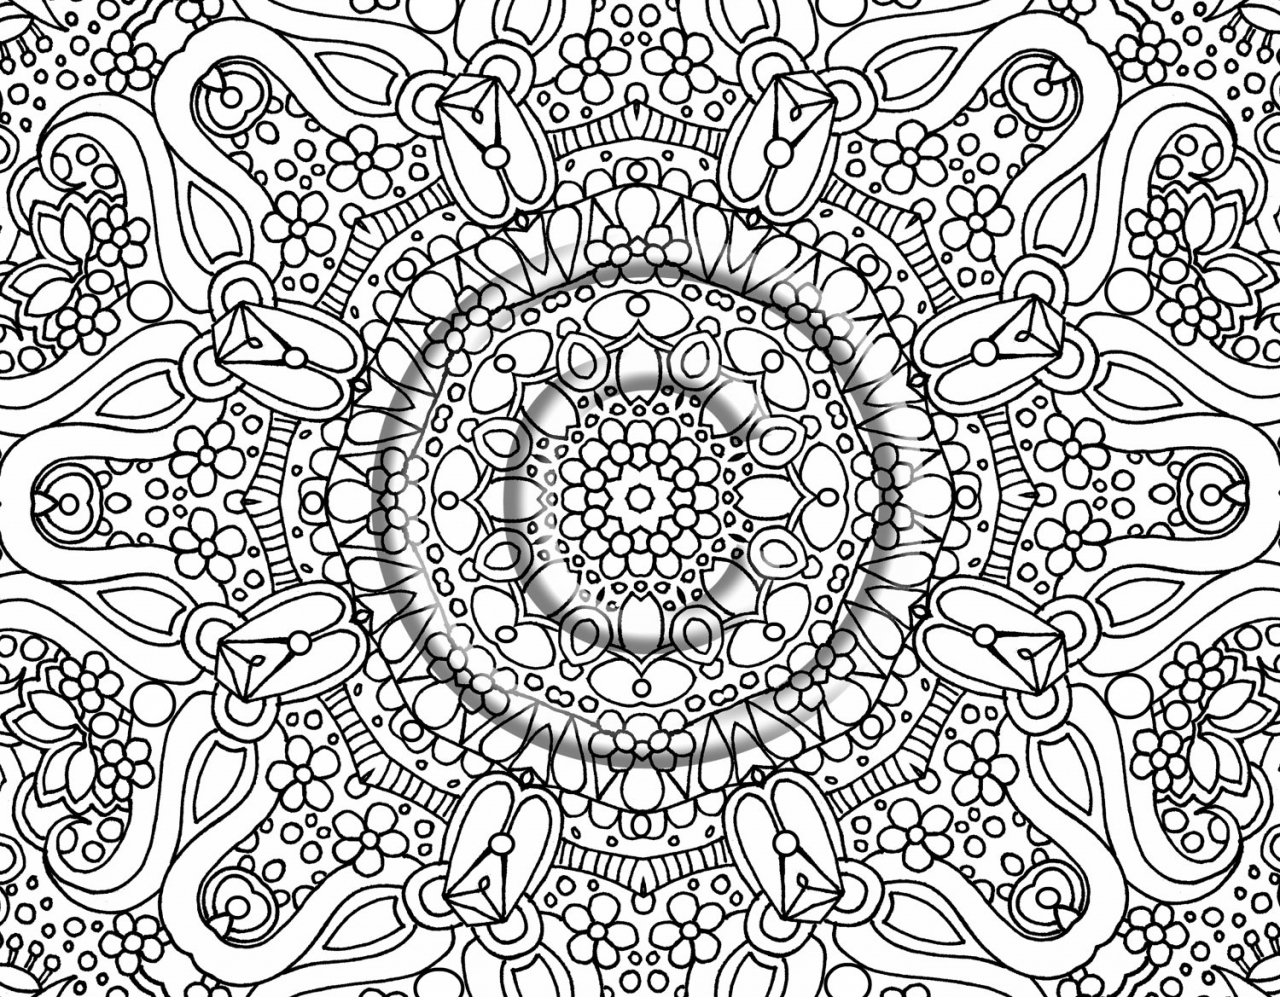 difficult coloring pages for teenagers difficult coloring pages for older children coloring home difficult pages coloring teenagers for